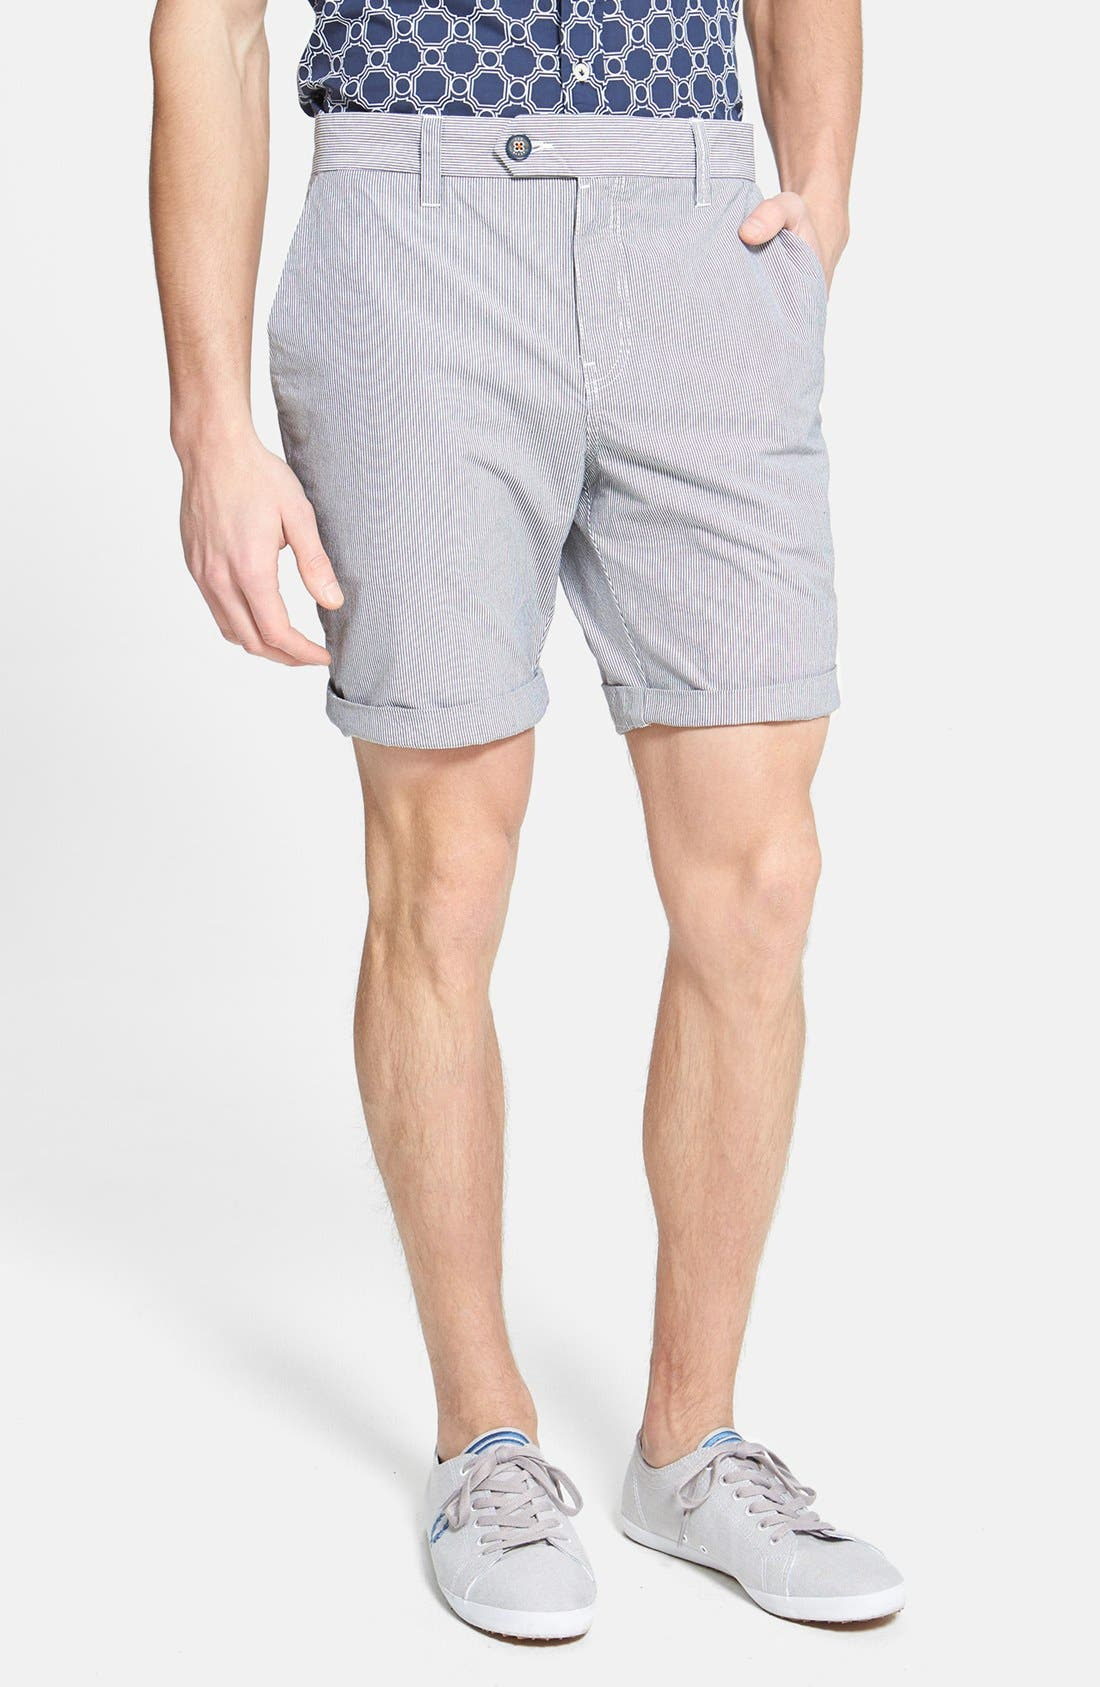 Alternate Image 1 Selected - Ted Baker London 'Staddle' Slim Fit Stripe Shorts